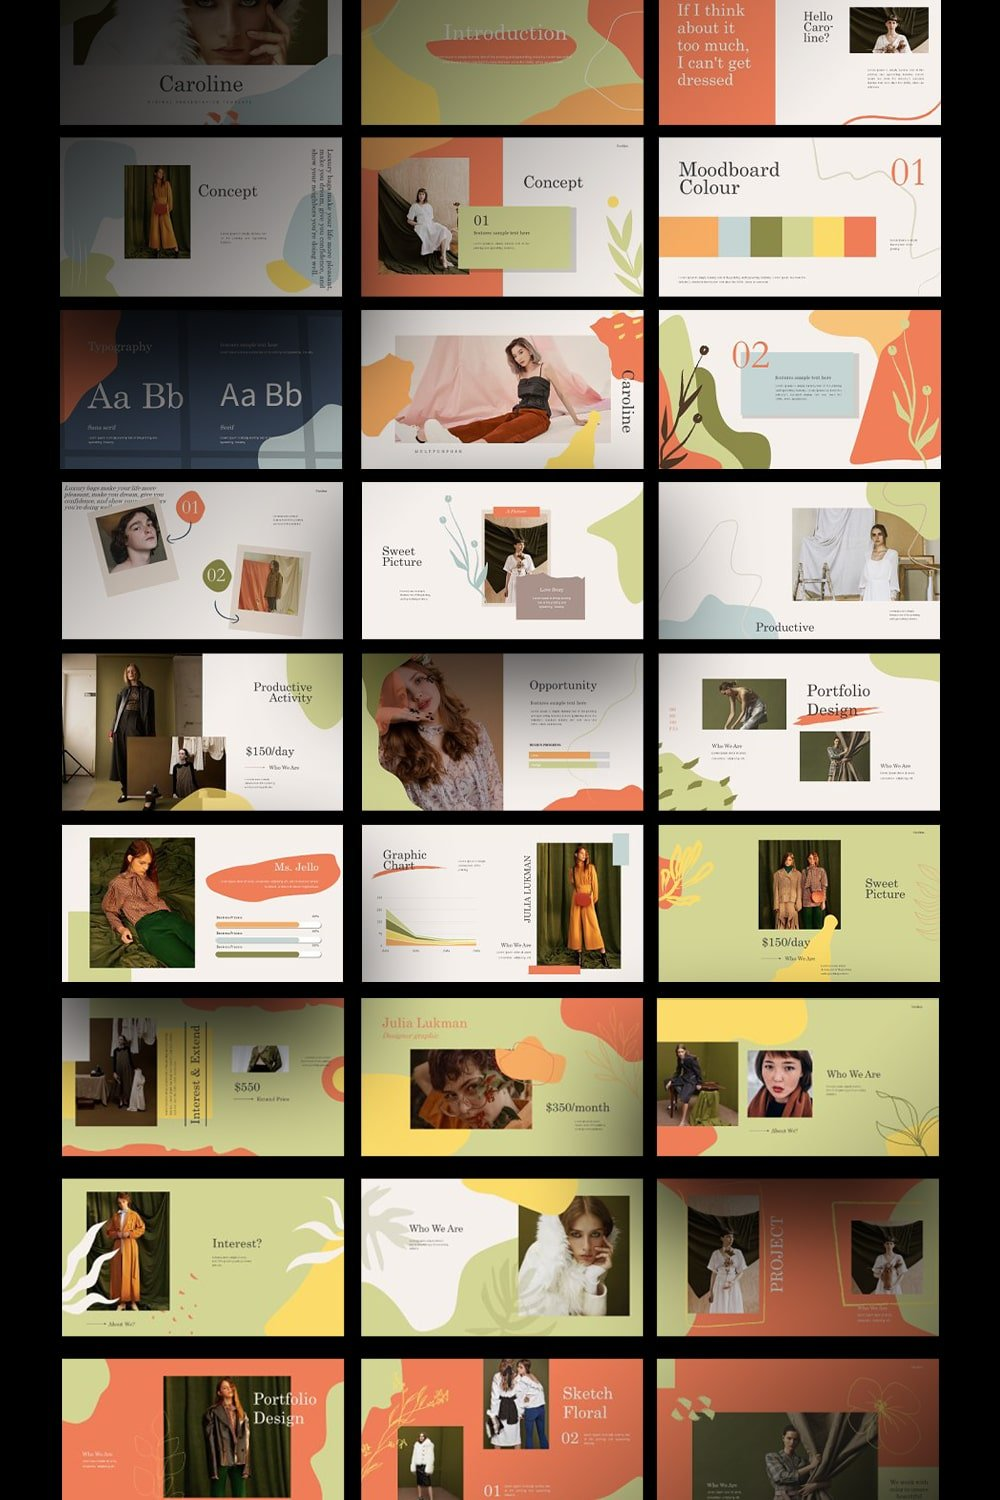 If you want make your presentation creative and contemporary, use this template.